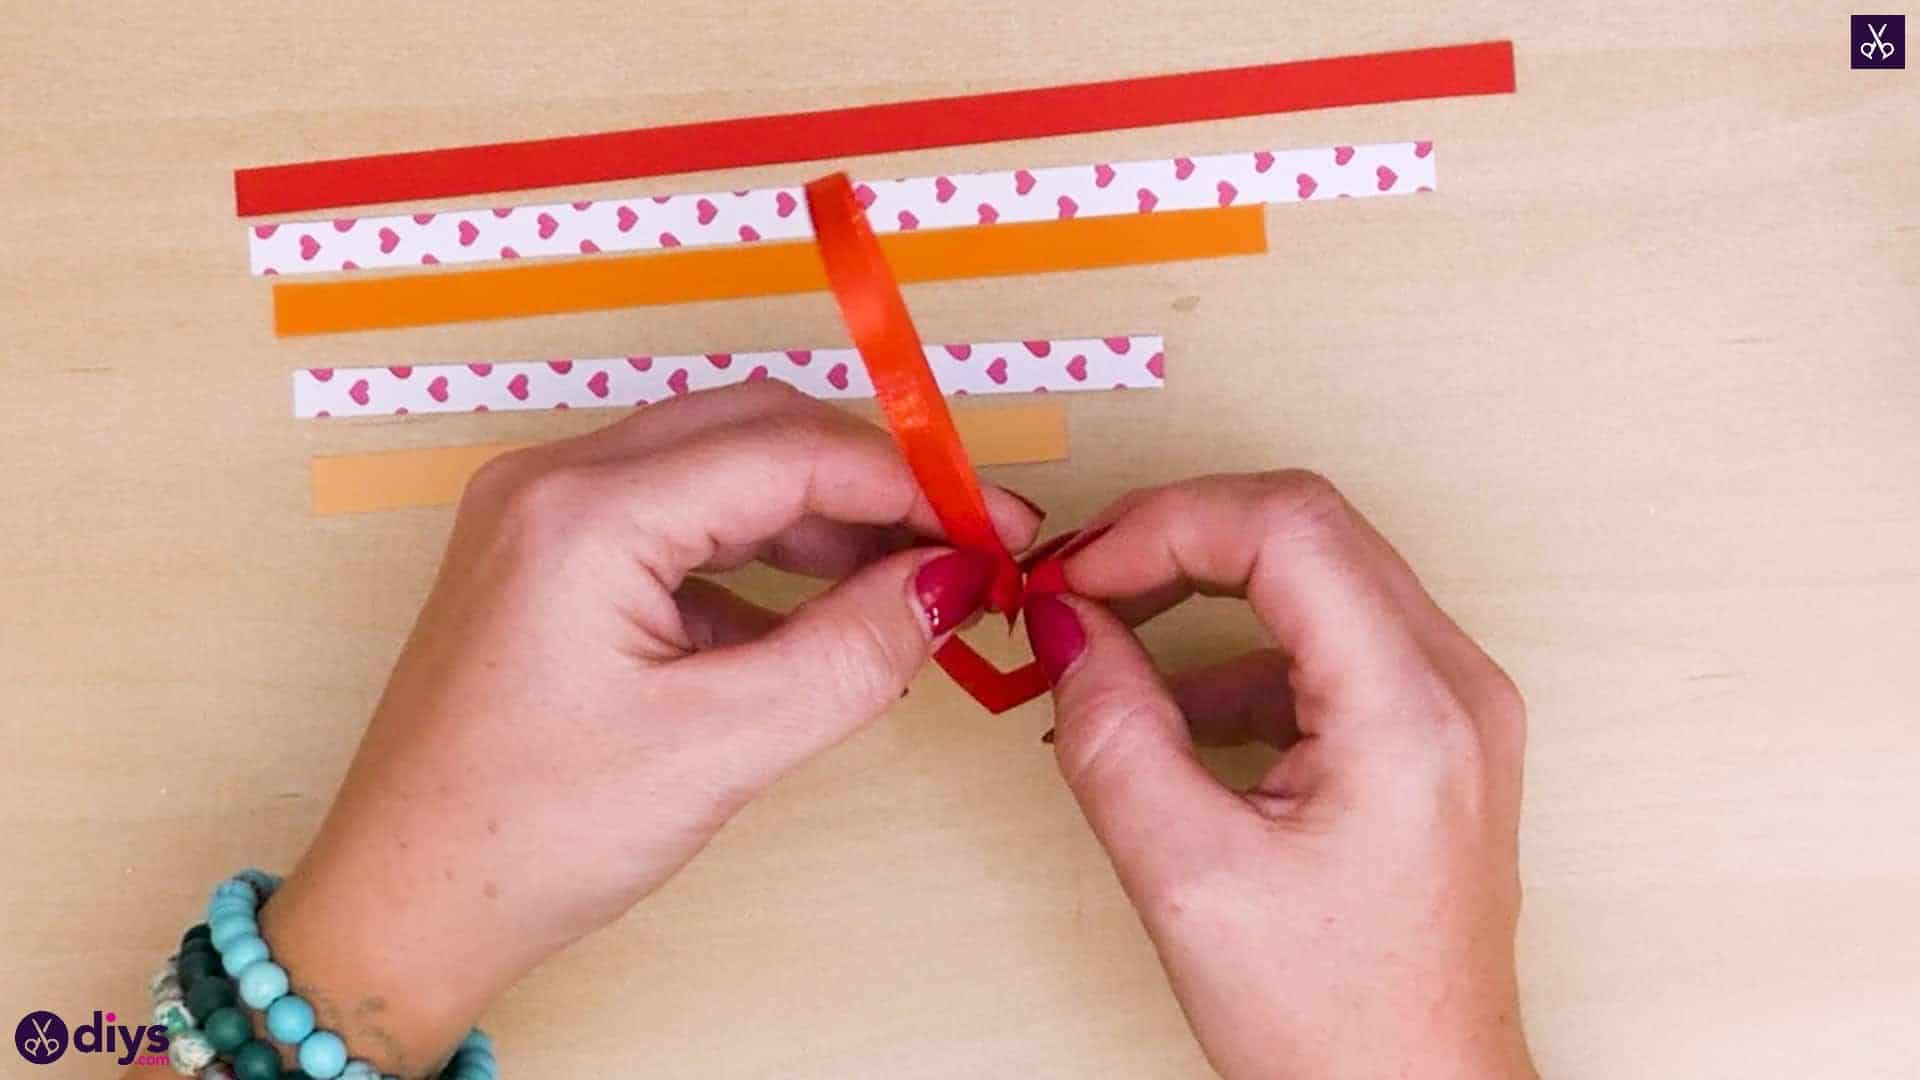 Diy ribbon heart step 5b